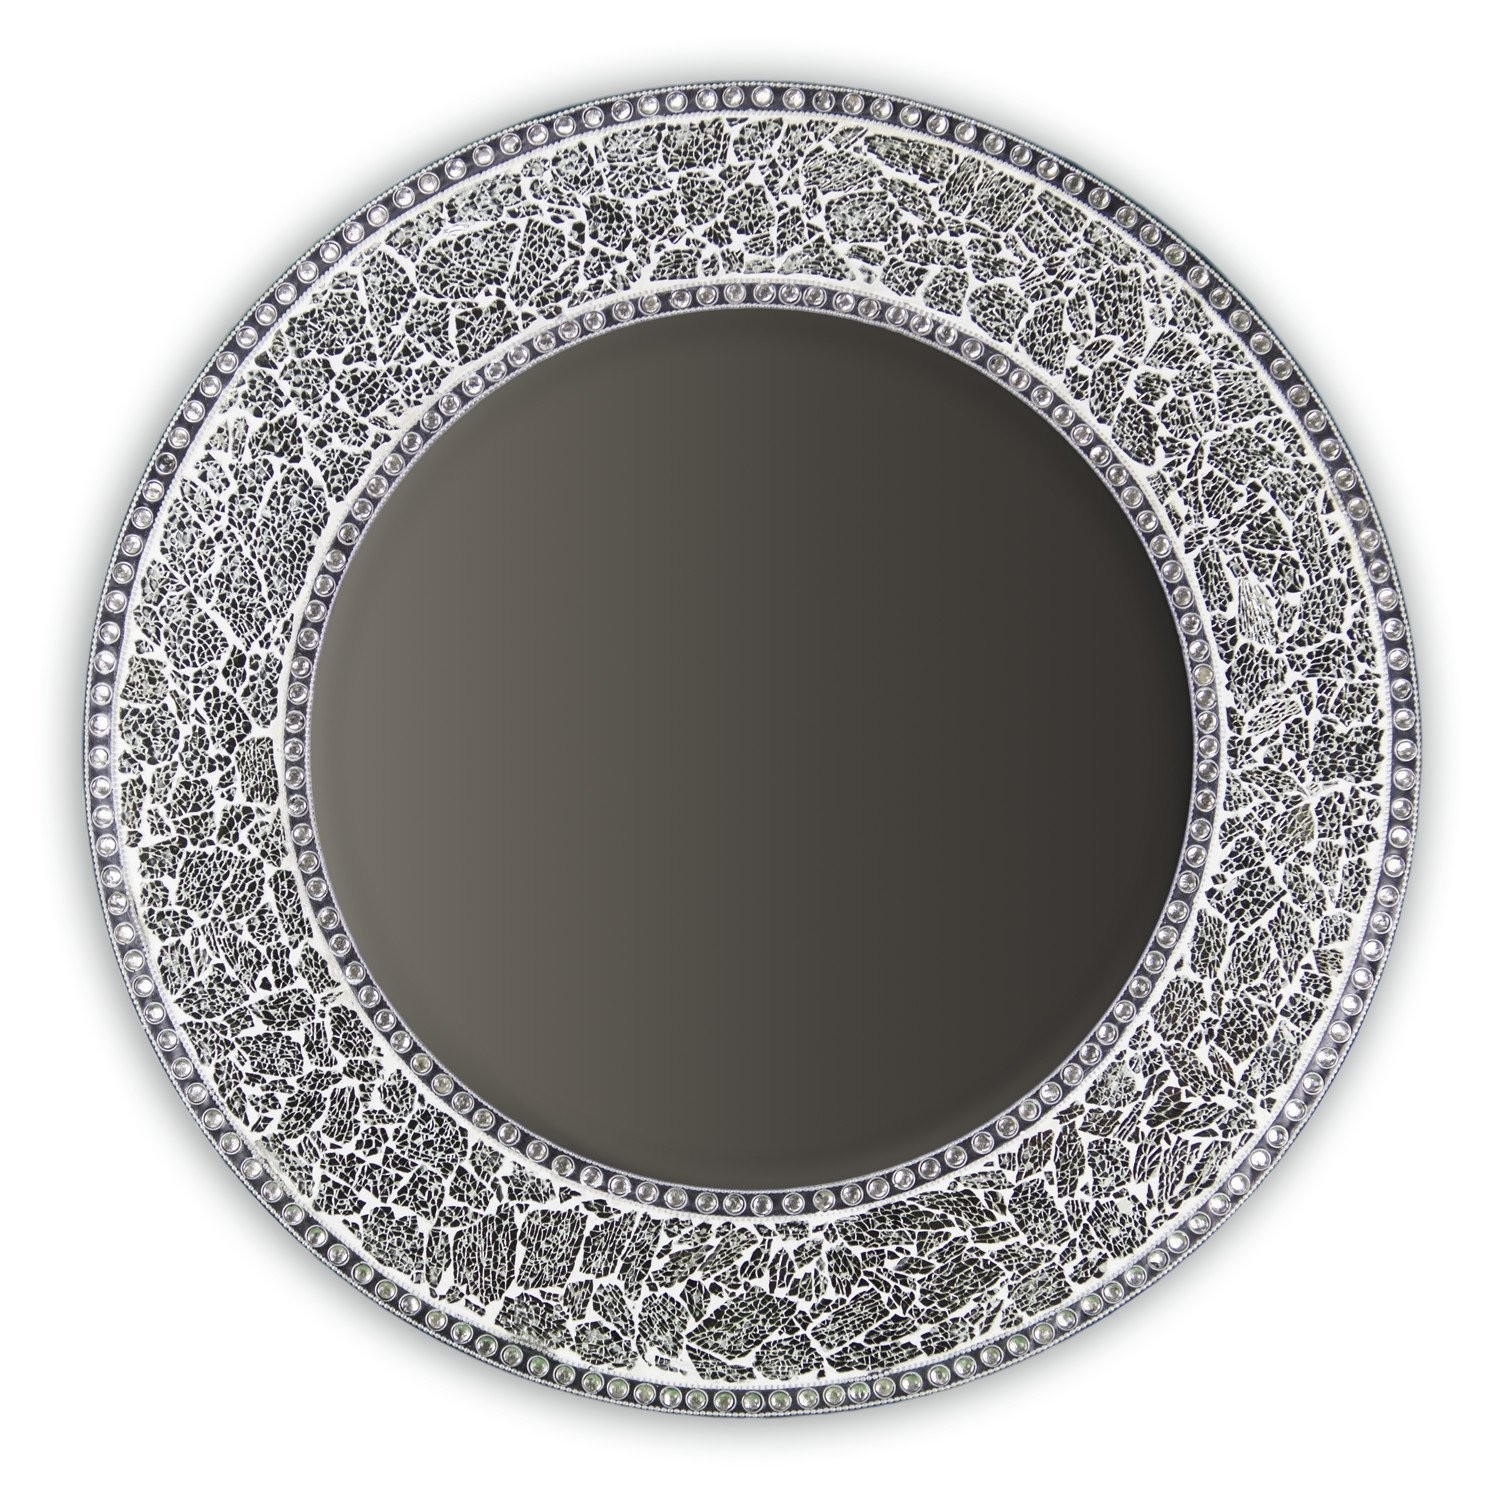 Buy 24 Silver Round Crackled Glass Mosaic Decorative Wall Mirror Intended For Mosaic Wall Mirrors (Image 2 of 15)